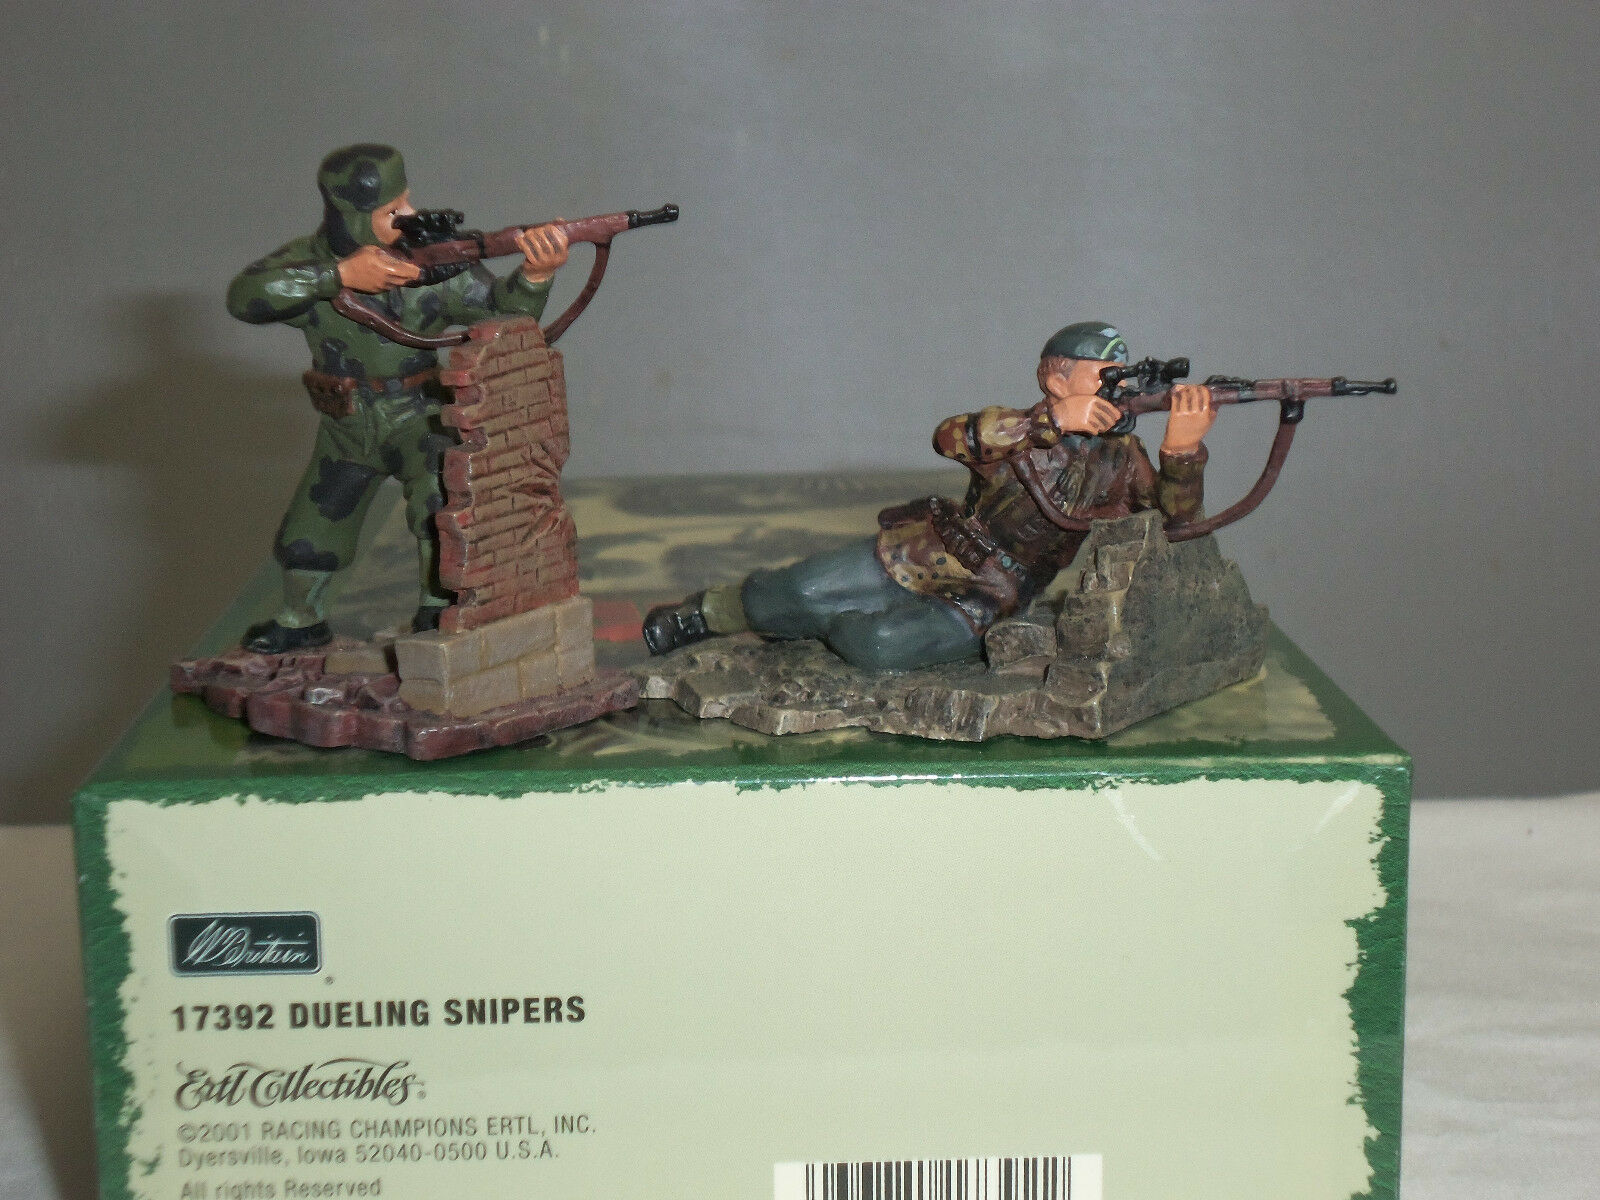 BRITAINS 17392 DUELLING SNIPERS WORLD WAR TWO METAL TOY SOLDIER SOLDIER SOLDIER FIGURE SET e42d12